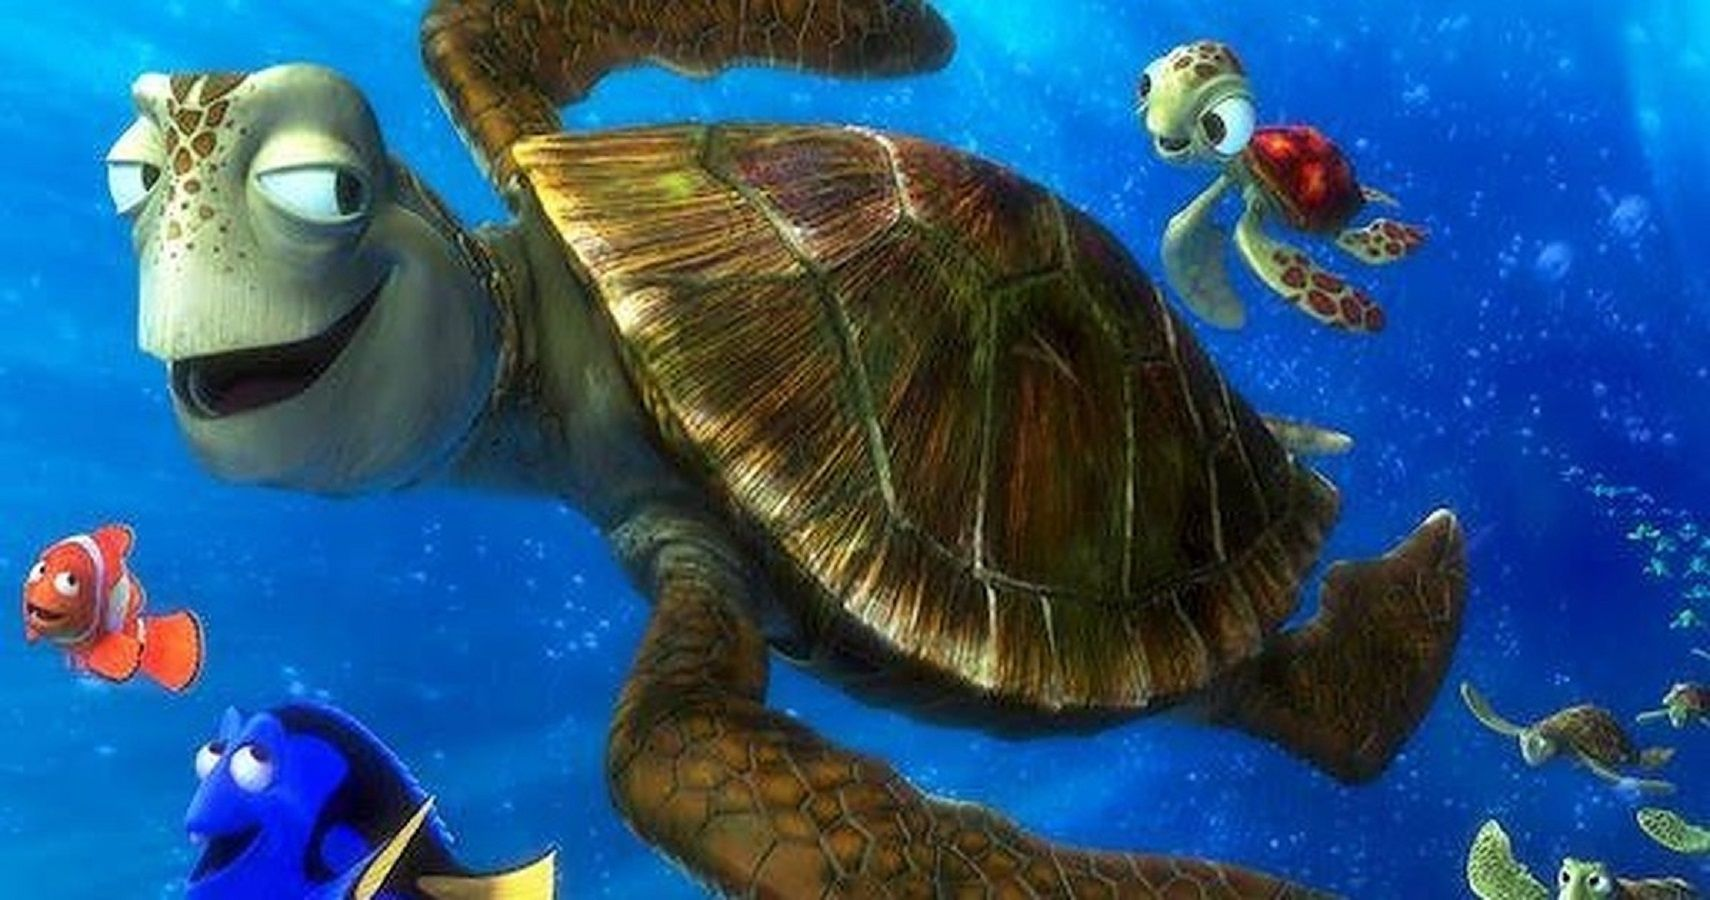 Disney: 10 Best Quotes From Finding Nemo | ScreenRant